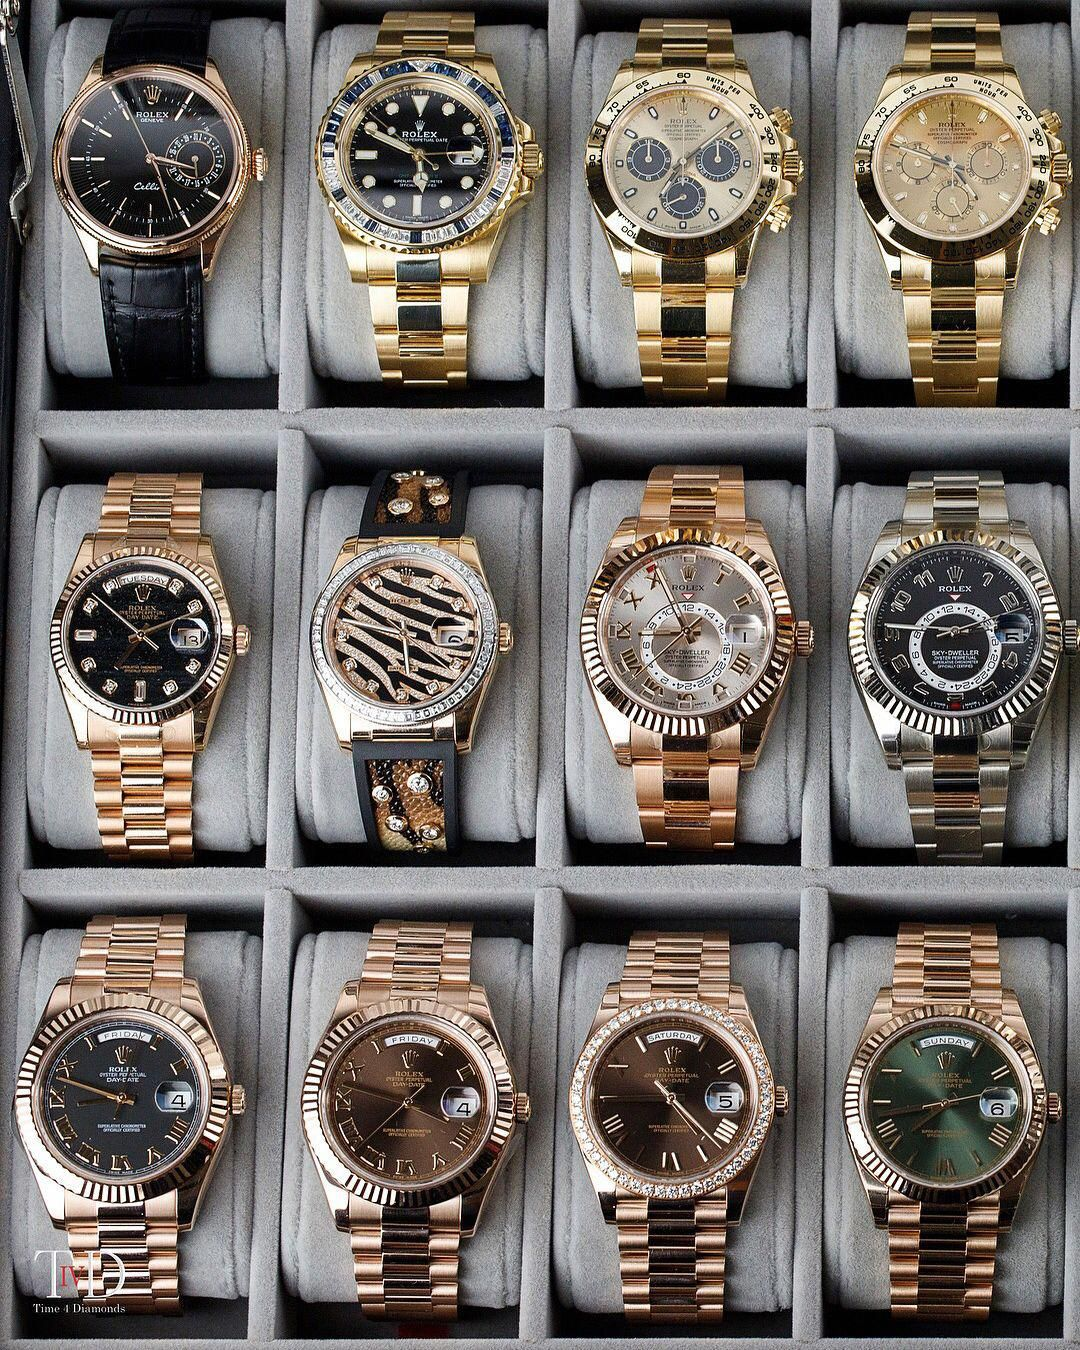 "Watches by Aleks on Instagram: ""Part of the Rolex collection available at @time4diamonds"